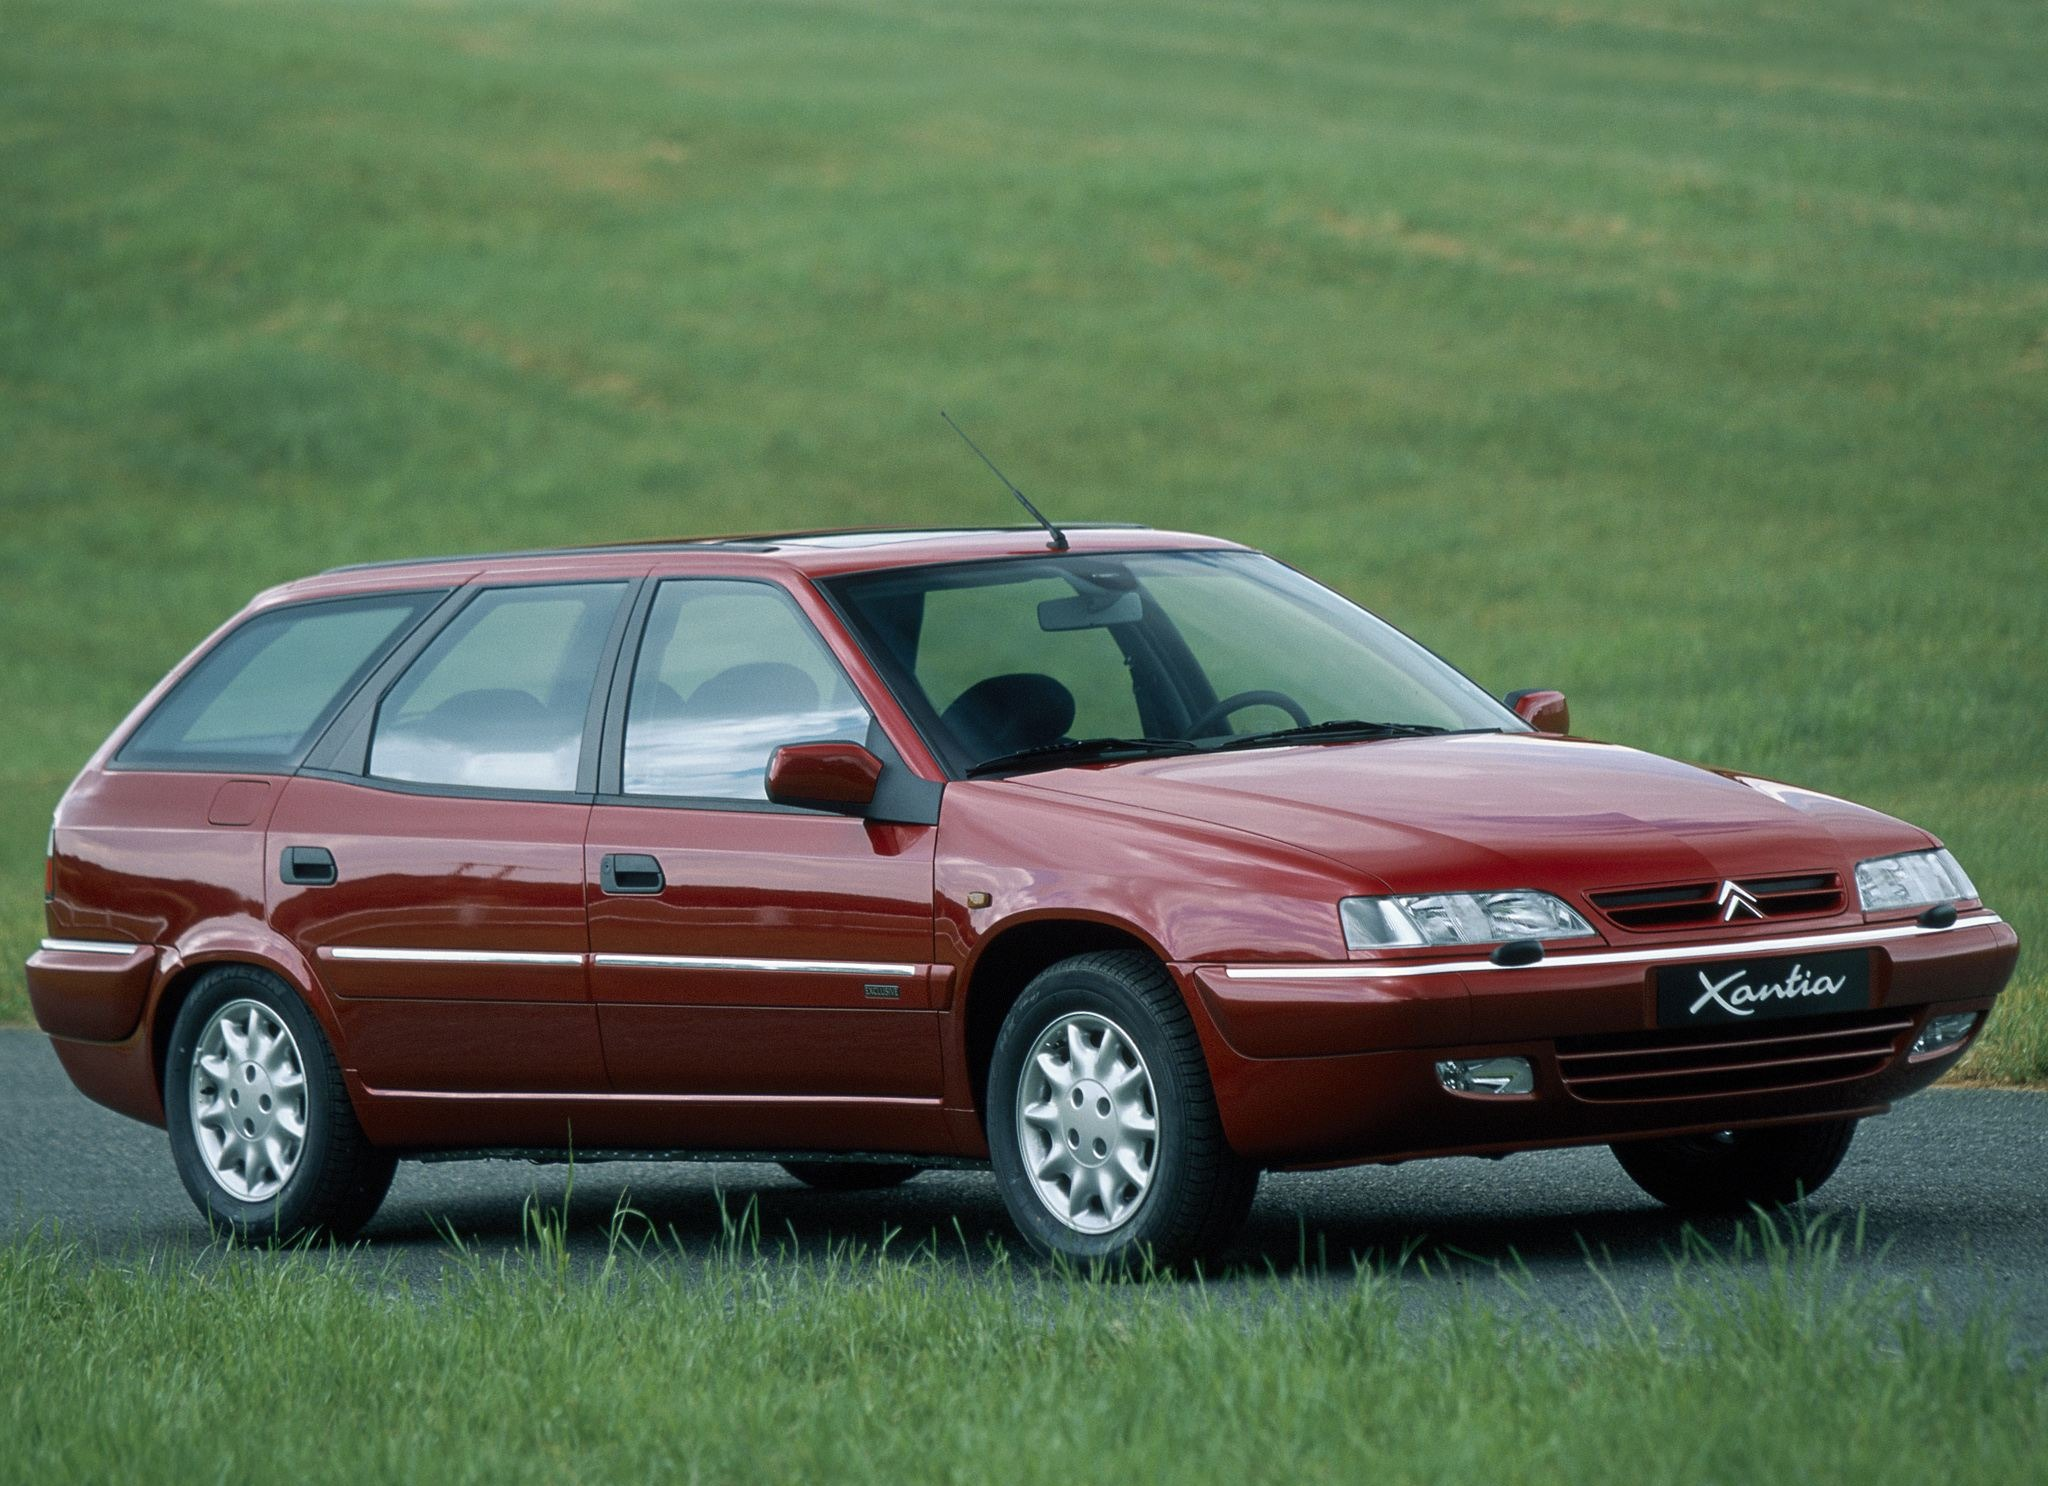 CITROEN XANTIA Estate (X2) / Ксантия